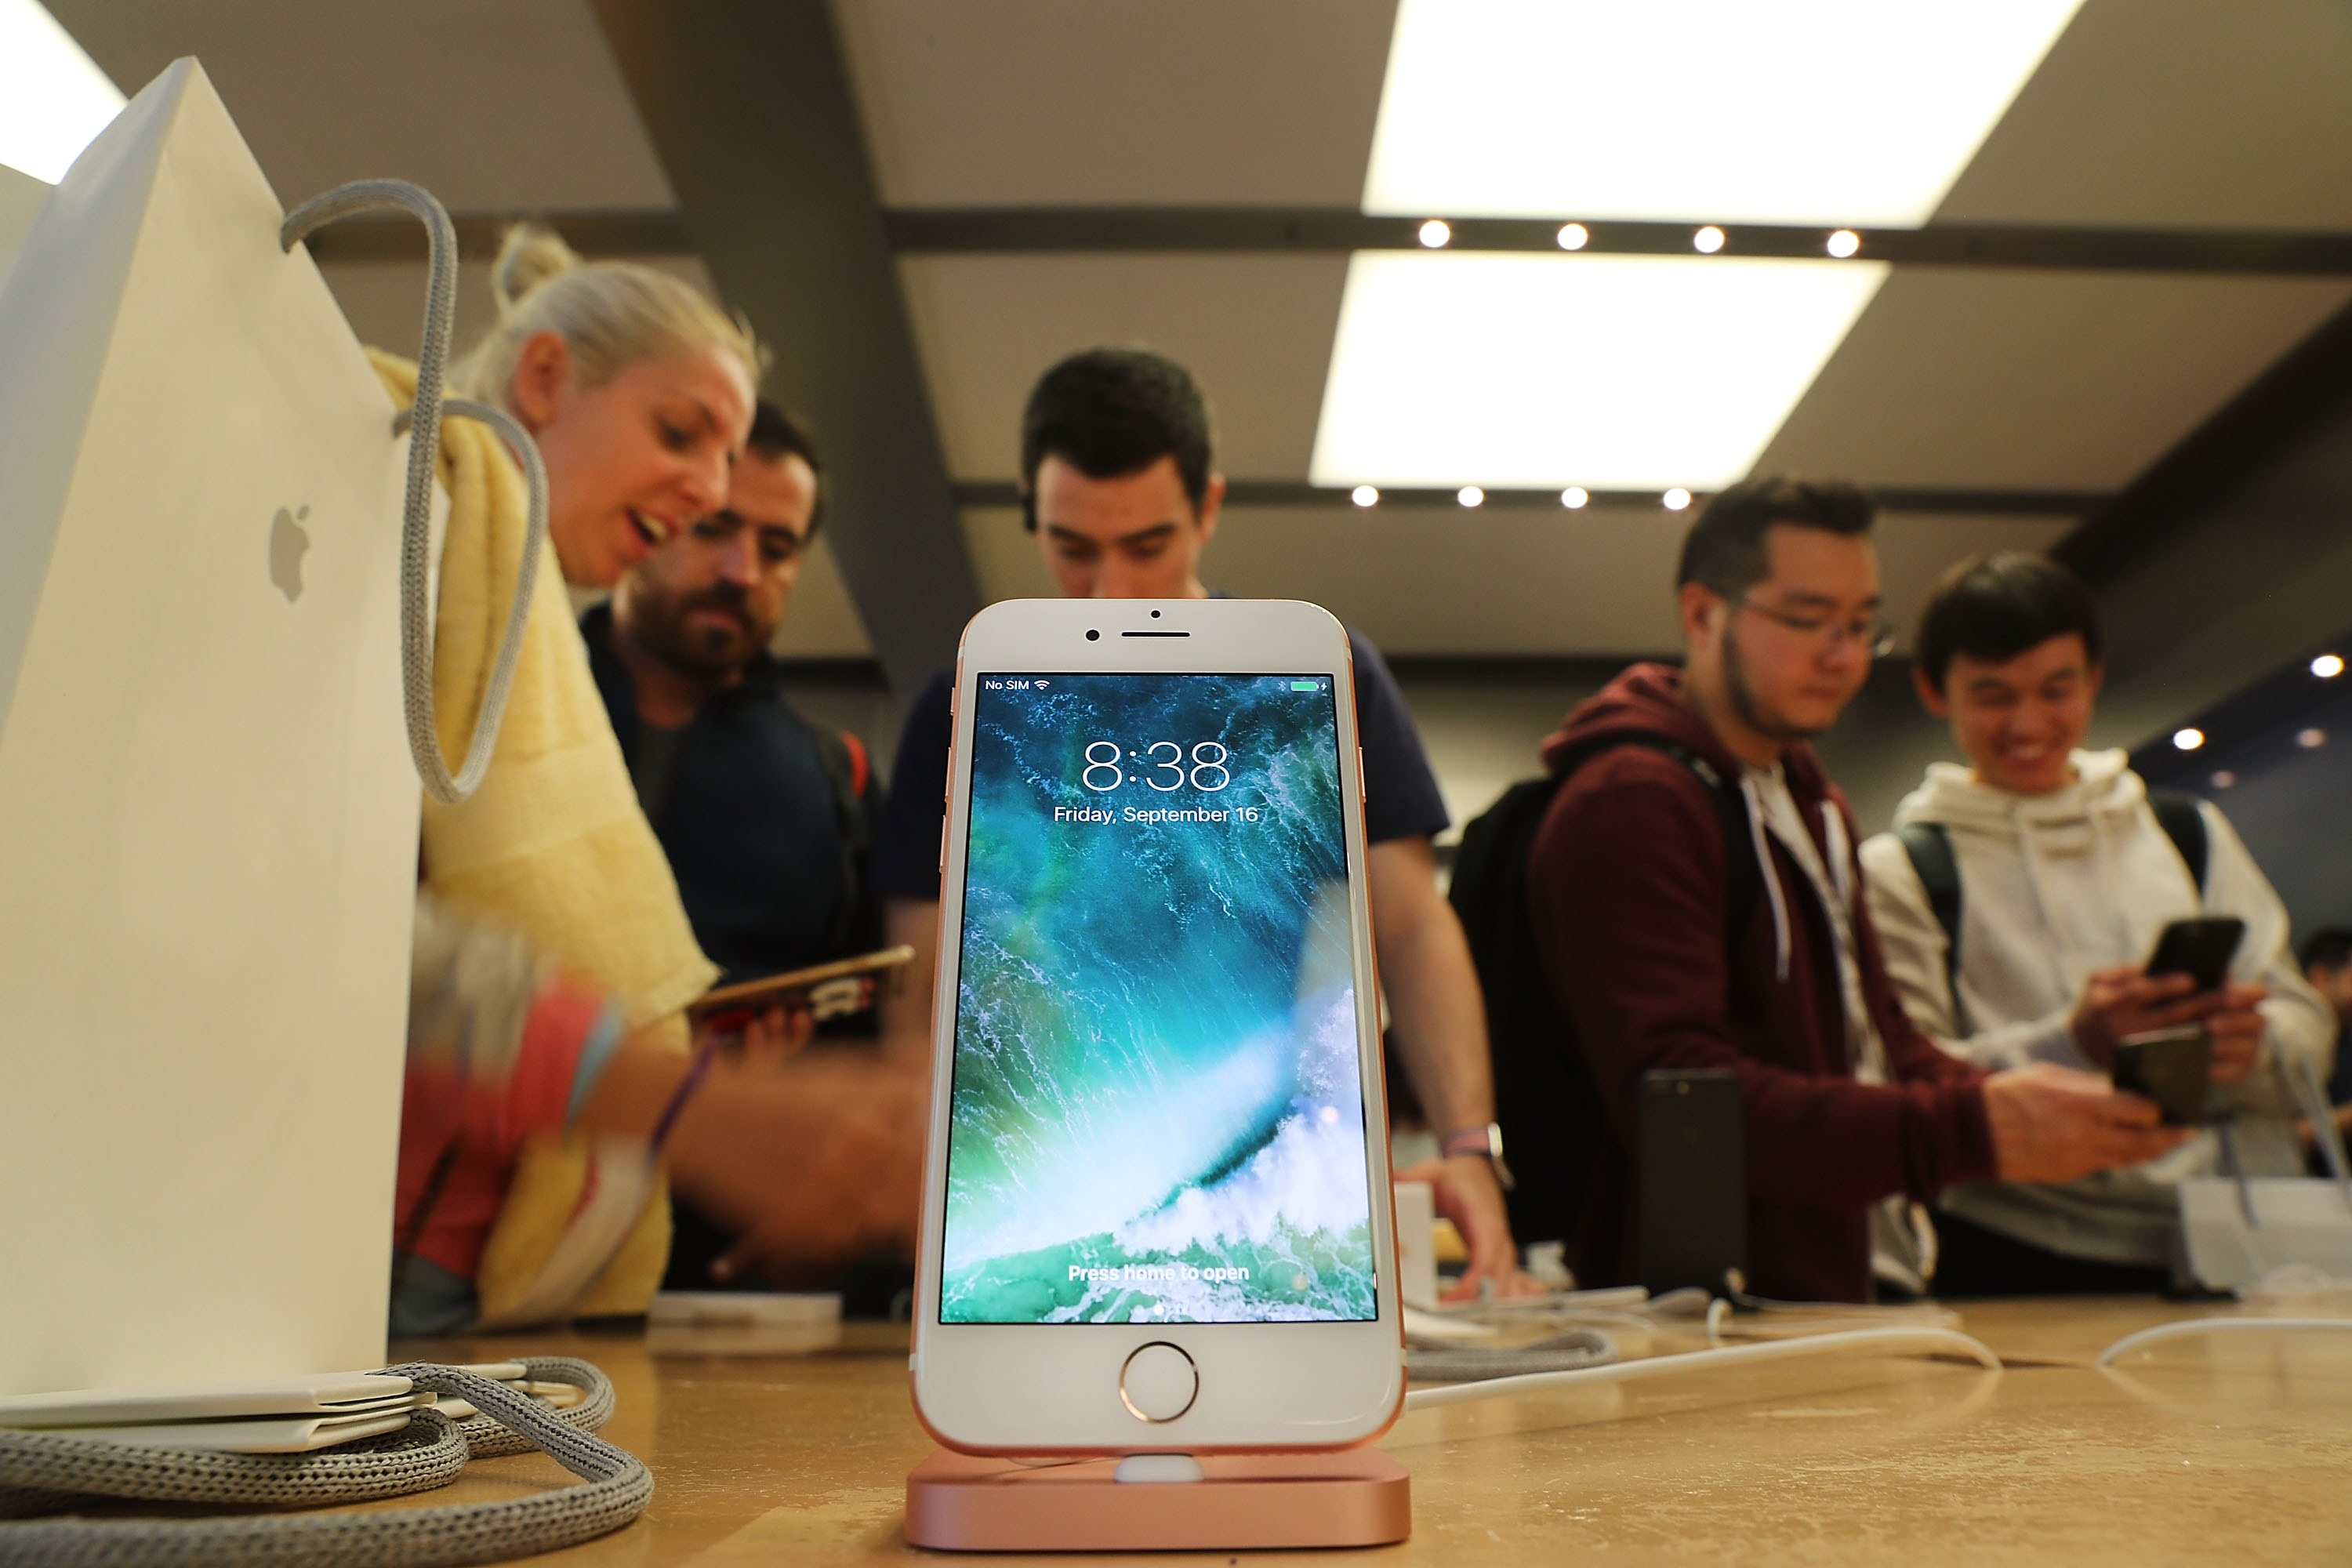 The new iPhone 7 is displayed on a table at an Apple store in Manhattan in New York City on Sept. 16, 2016. (Photo by Spencer Platt/Getty Images)